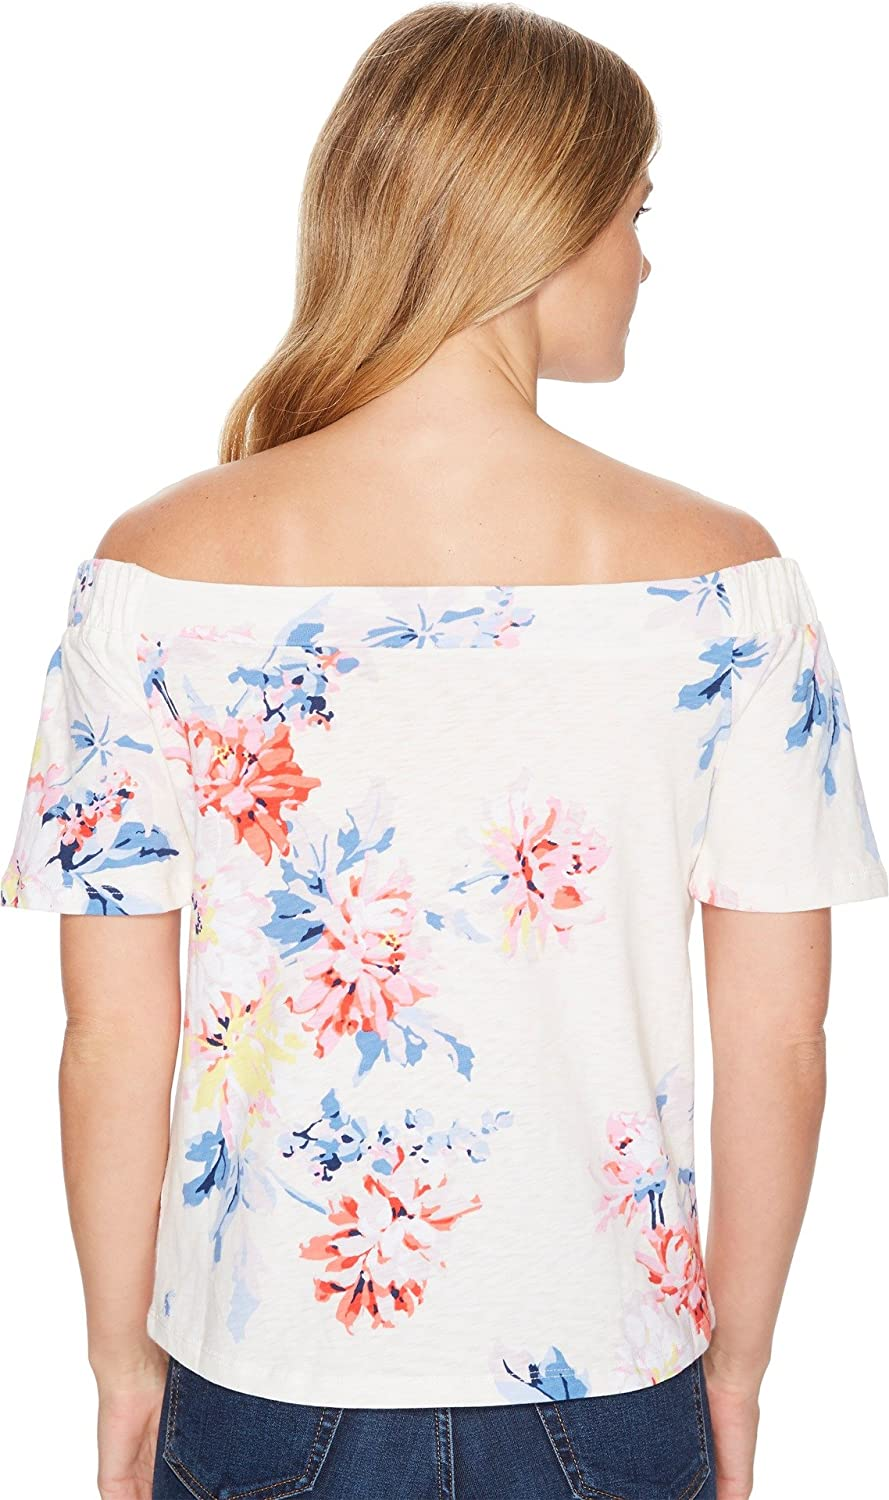 4a5570628c9 Joules Women's Oona Jersey Bardot Top Cream WHITSTABLE Floral 2 at Amazon  Women's Clothing store: